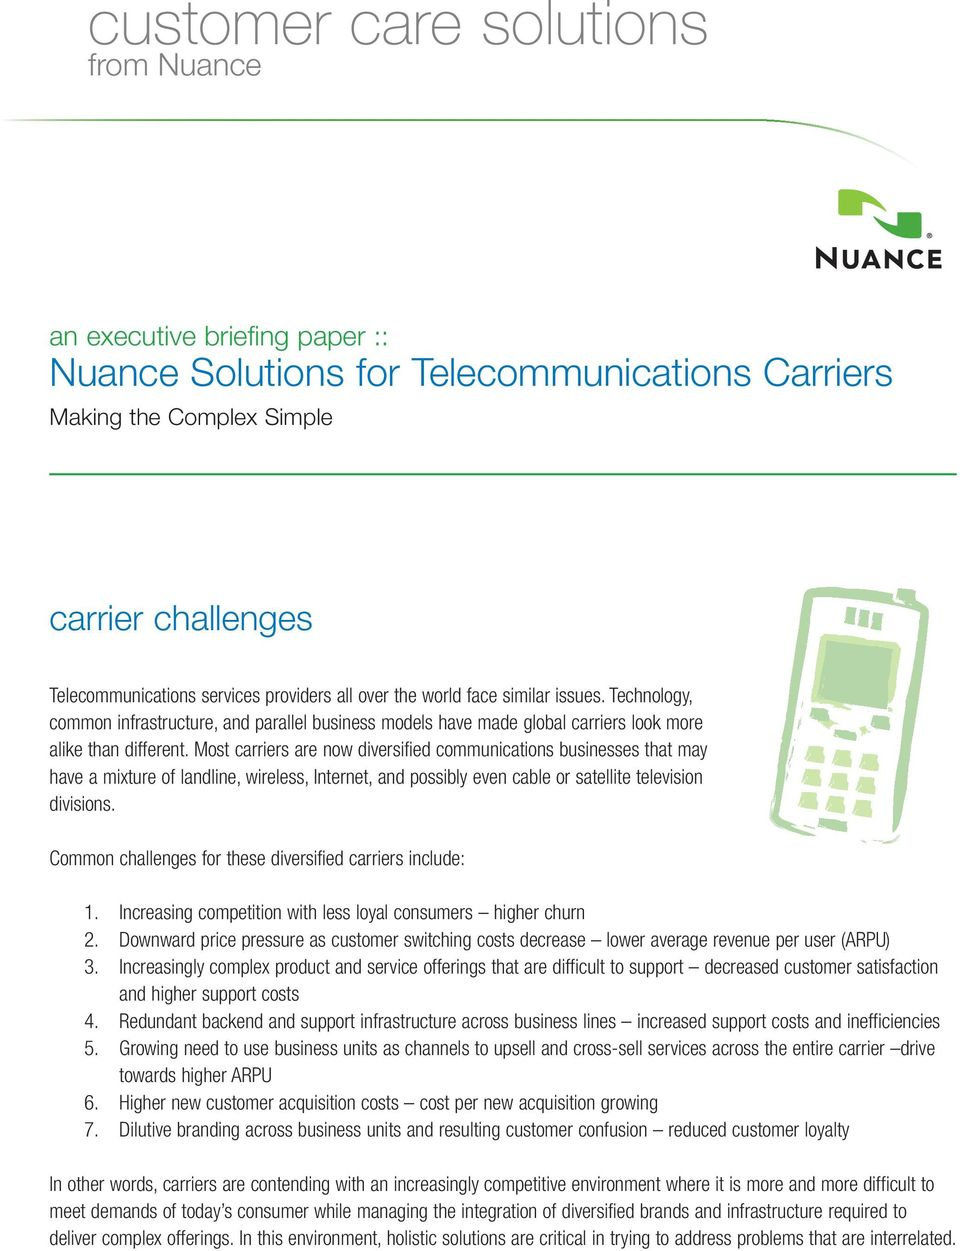 Most carriers are now diversified communications businesses that may have a mixture of landline, wireless, Internet, and possibly even cable or satellite television divisions.